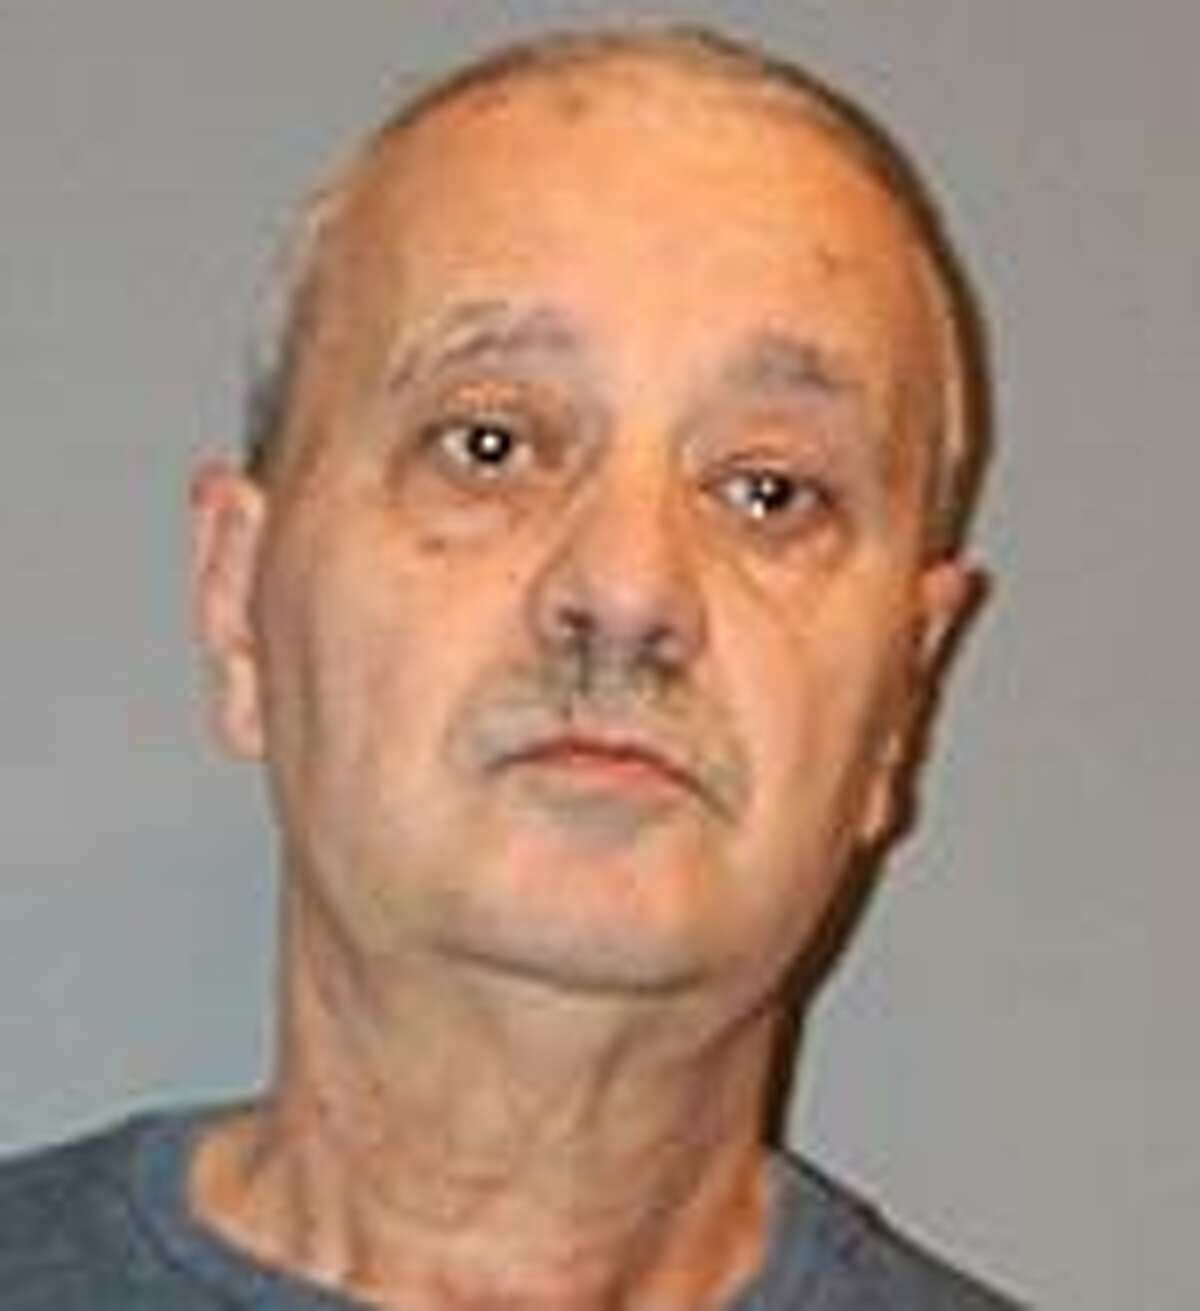 Angelo Recine, 68, of Bridgeport, the owner of Stony Brook Bar and Restaurant in Stratford, has been arrested for allegedly selling cocaine from the business. He was charged with with three counts of sale of cocaine and one count of operating a drug factory. Also arrested was the bartender, Laurie Herb, 51, of Stratford. She was charged with four counts of sale of cocaine. The arrests were made on Thursday, Oct. 12, 2017.